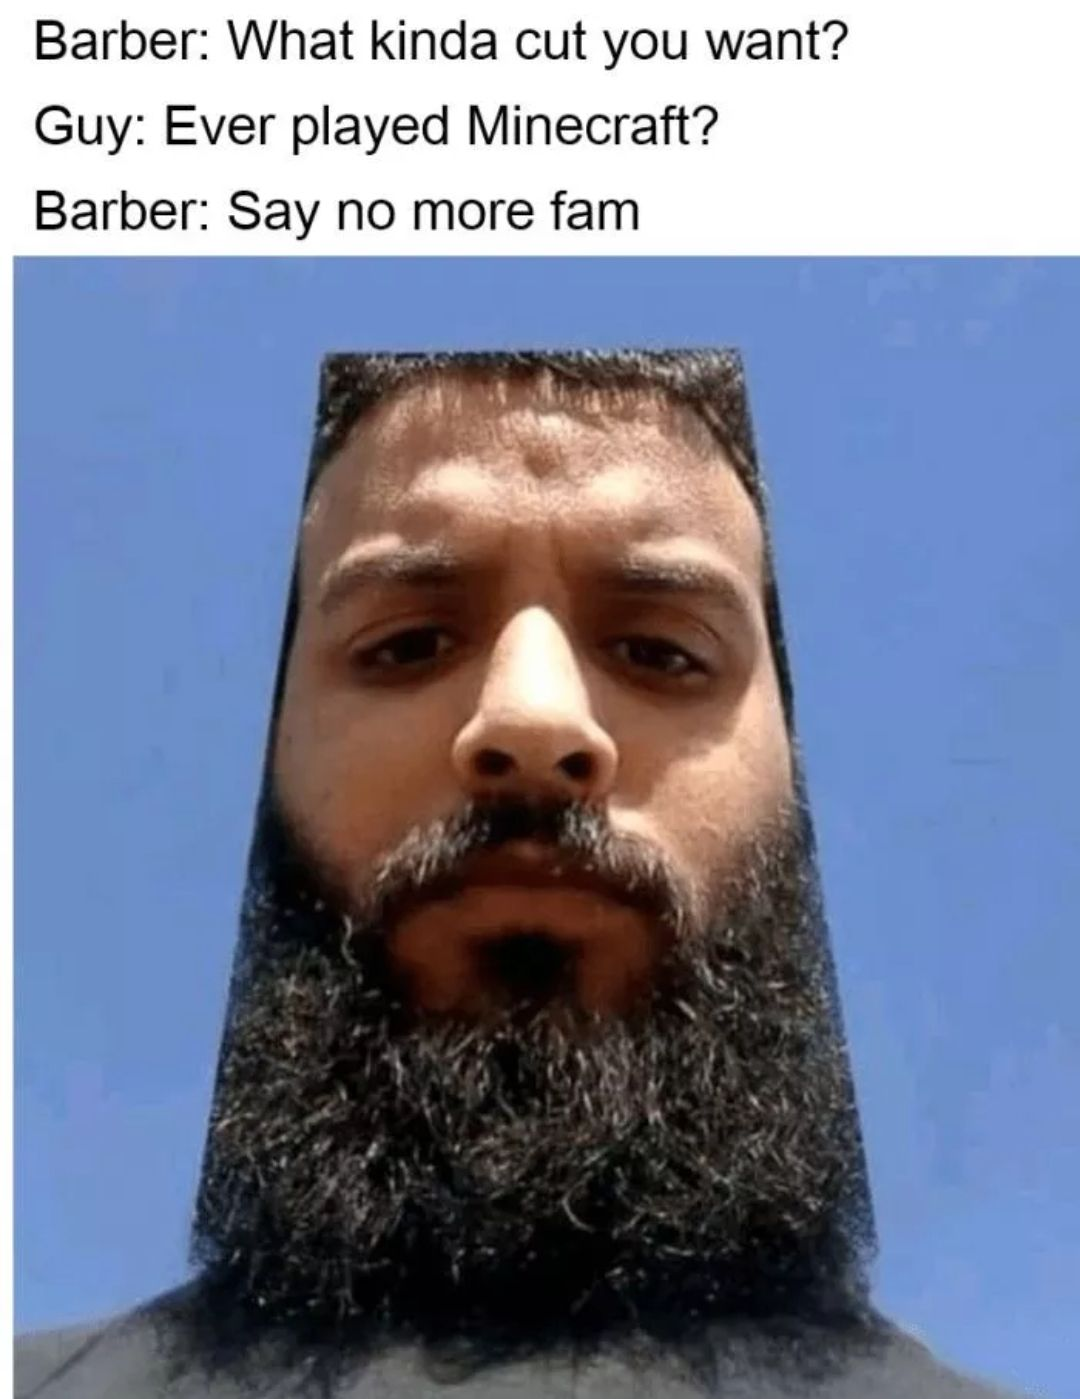 Meme Monday 31 In 2021 How To Play Minecraft Barber Say No More Barber